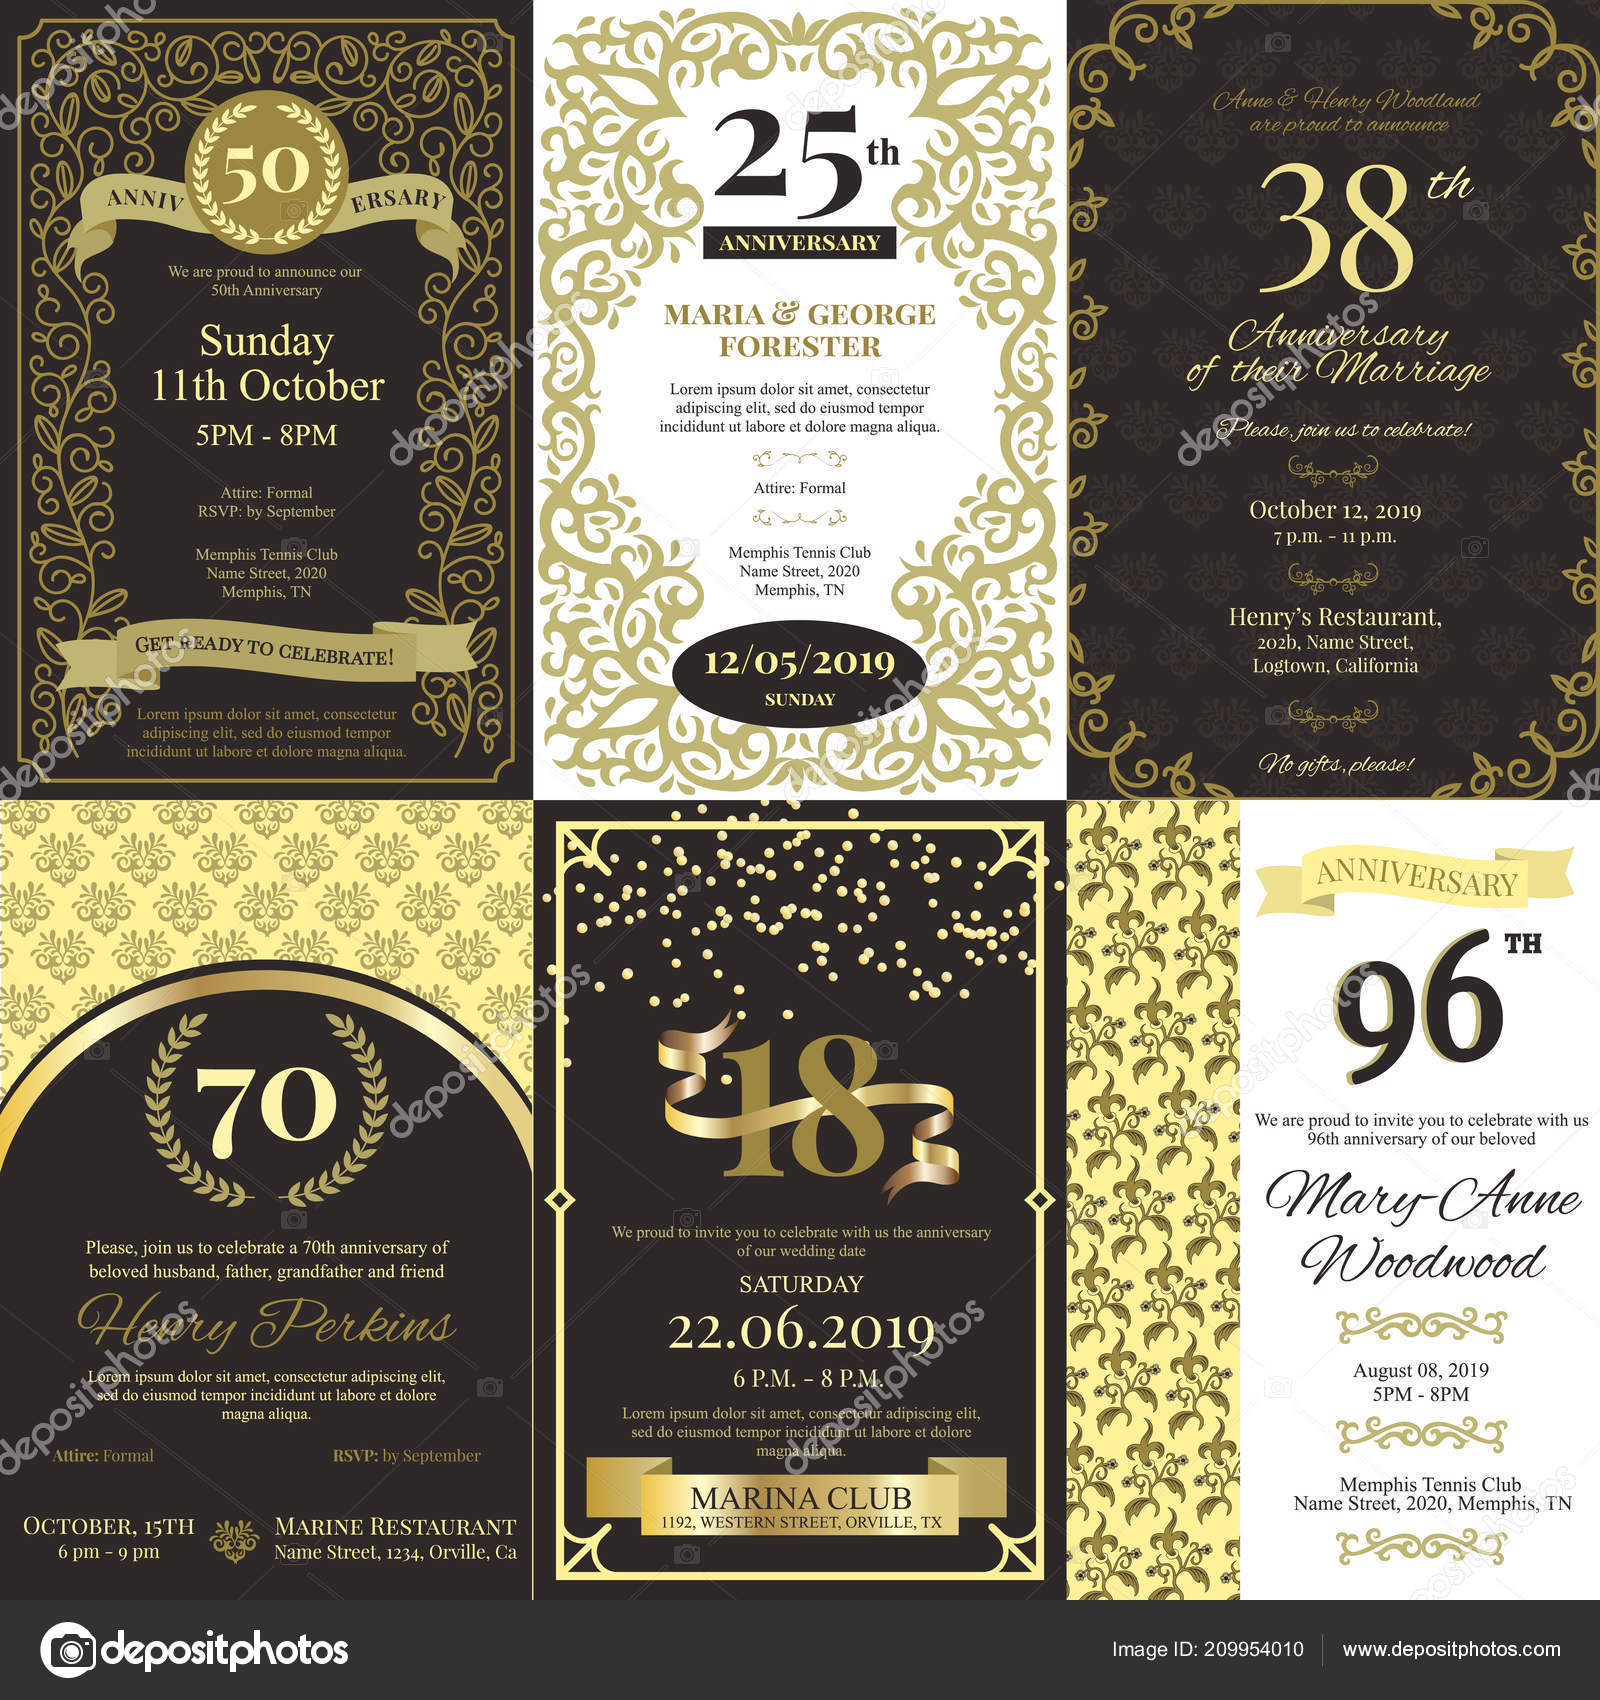 Anniversary invitation vector card inviting to birthday party or anniversary invitation vector card inviting to birthday party or wedding celebration background golden design template with stopboris Images